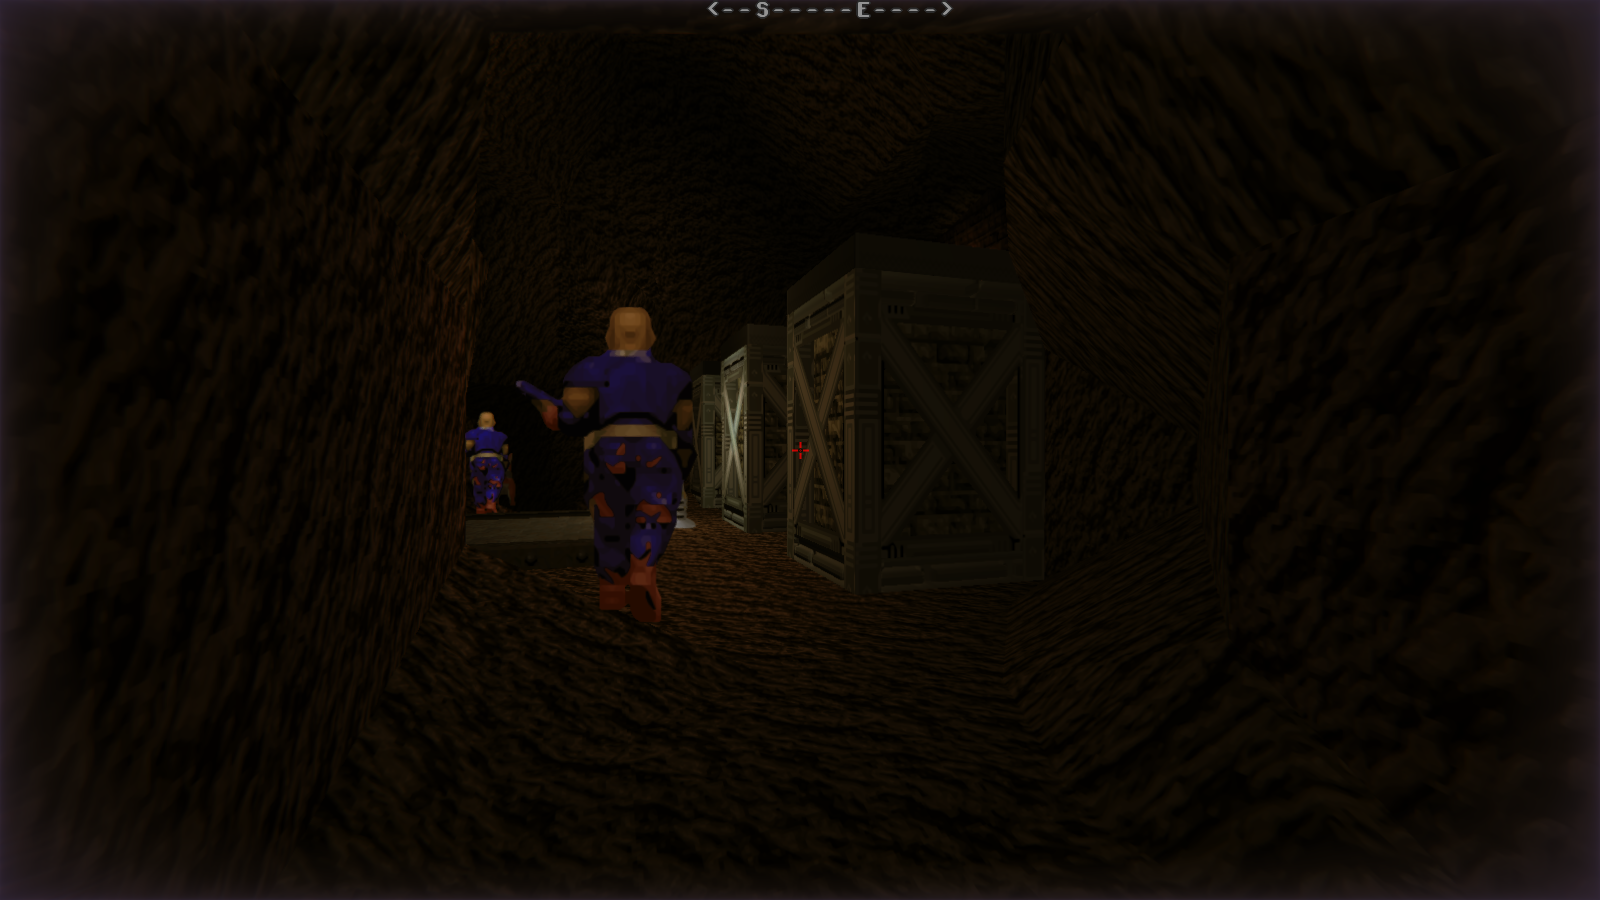 DRRP Doom RPG Remake Project SEC4 Sector 4 Zombie Lt Caves Screenshot